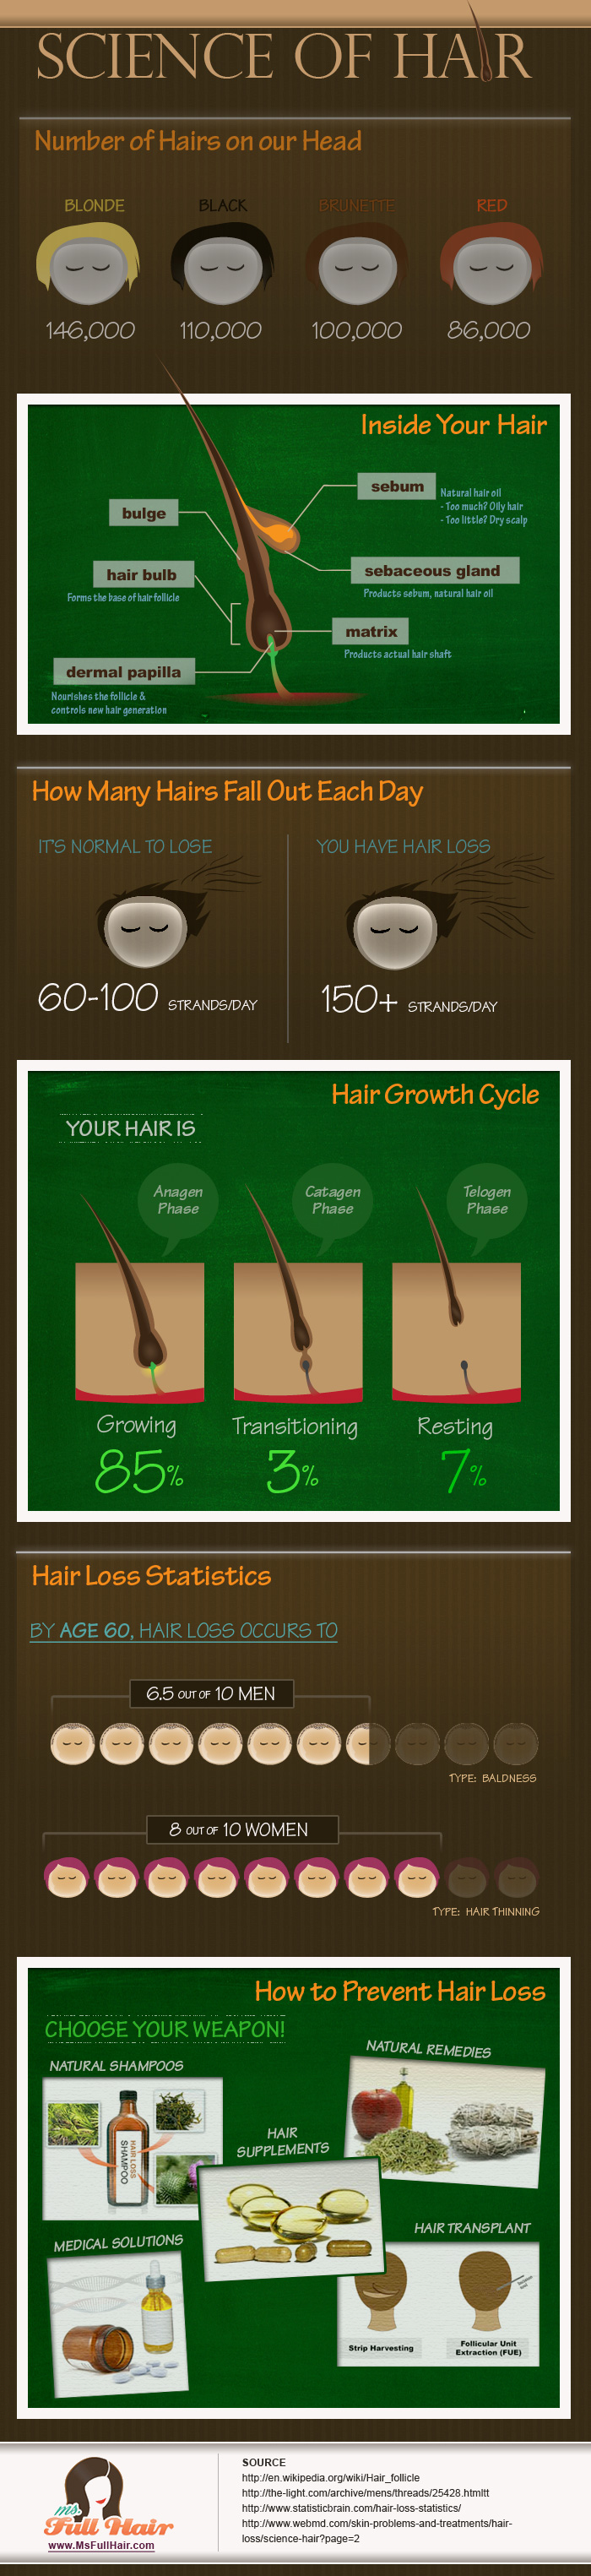 infographic science of hair care